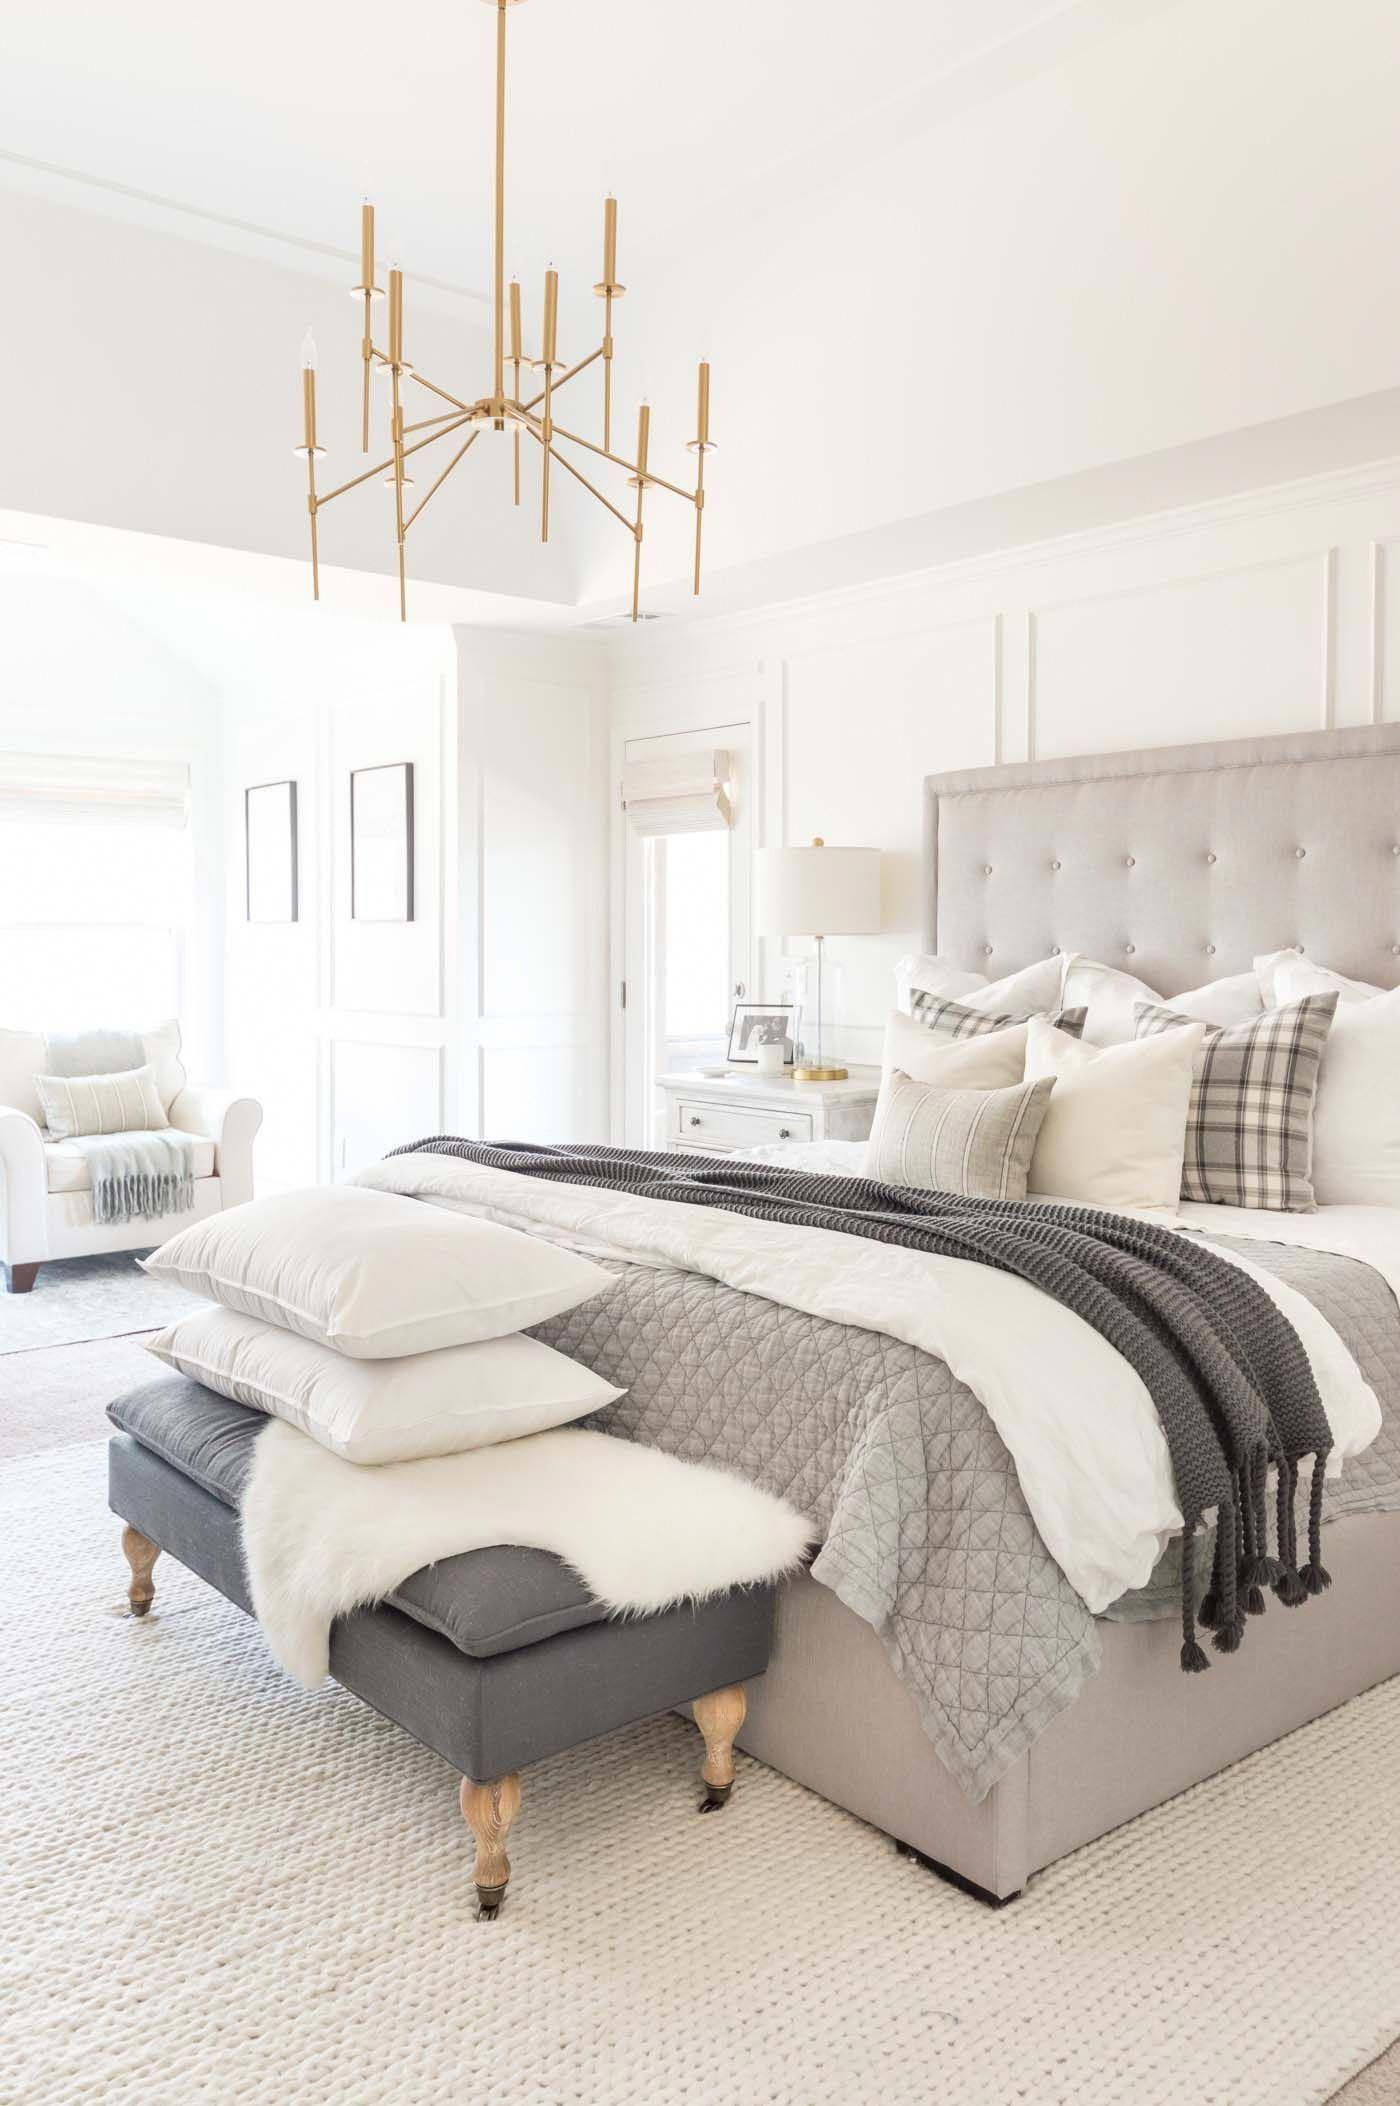 Neutral Winter Bedroom Ideas With Layers And Gray And White Plaid Bedroomdecor Masterbedroom Apartment Bedroom Design Bedroom Design Master Bedroom Design